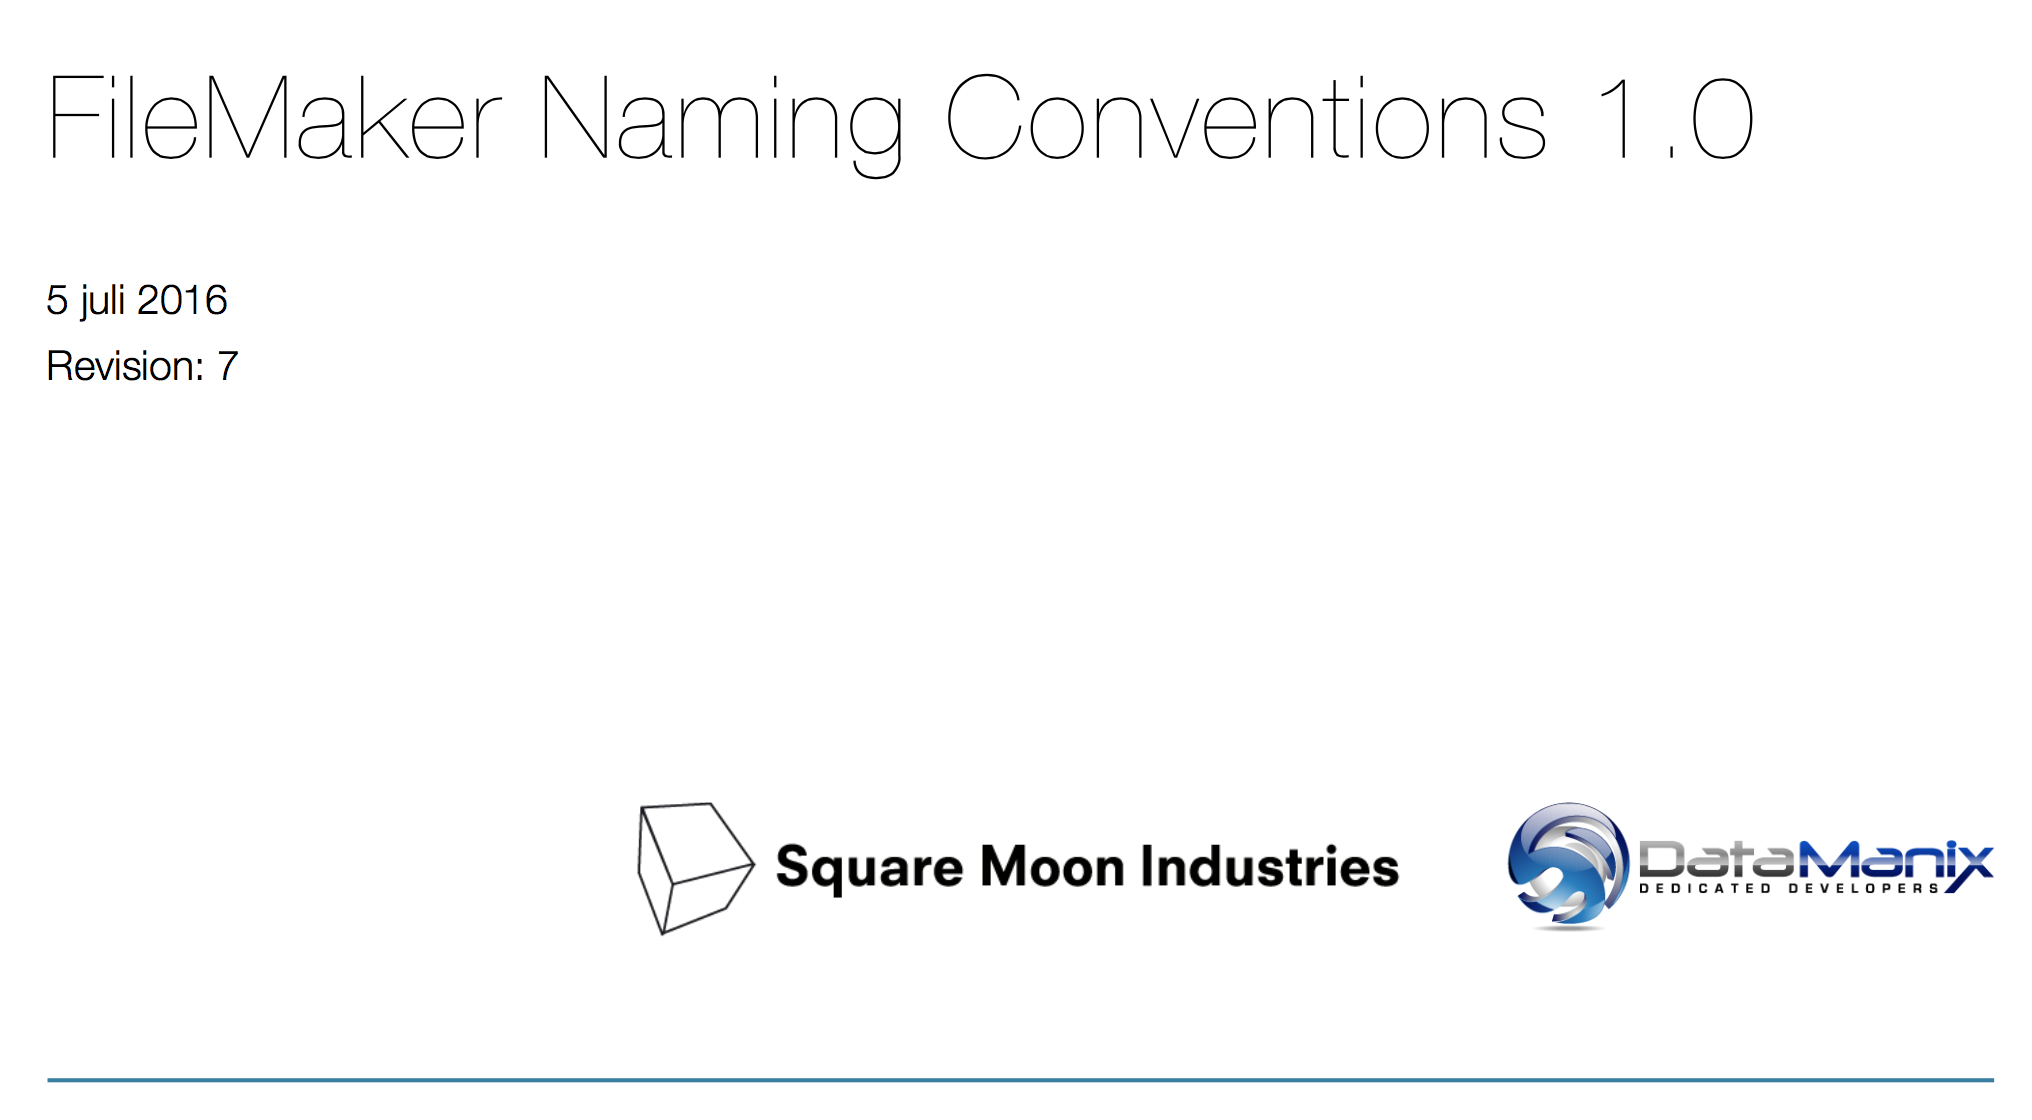 DataManix & SquareMoon naming conventions